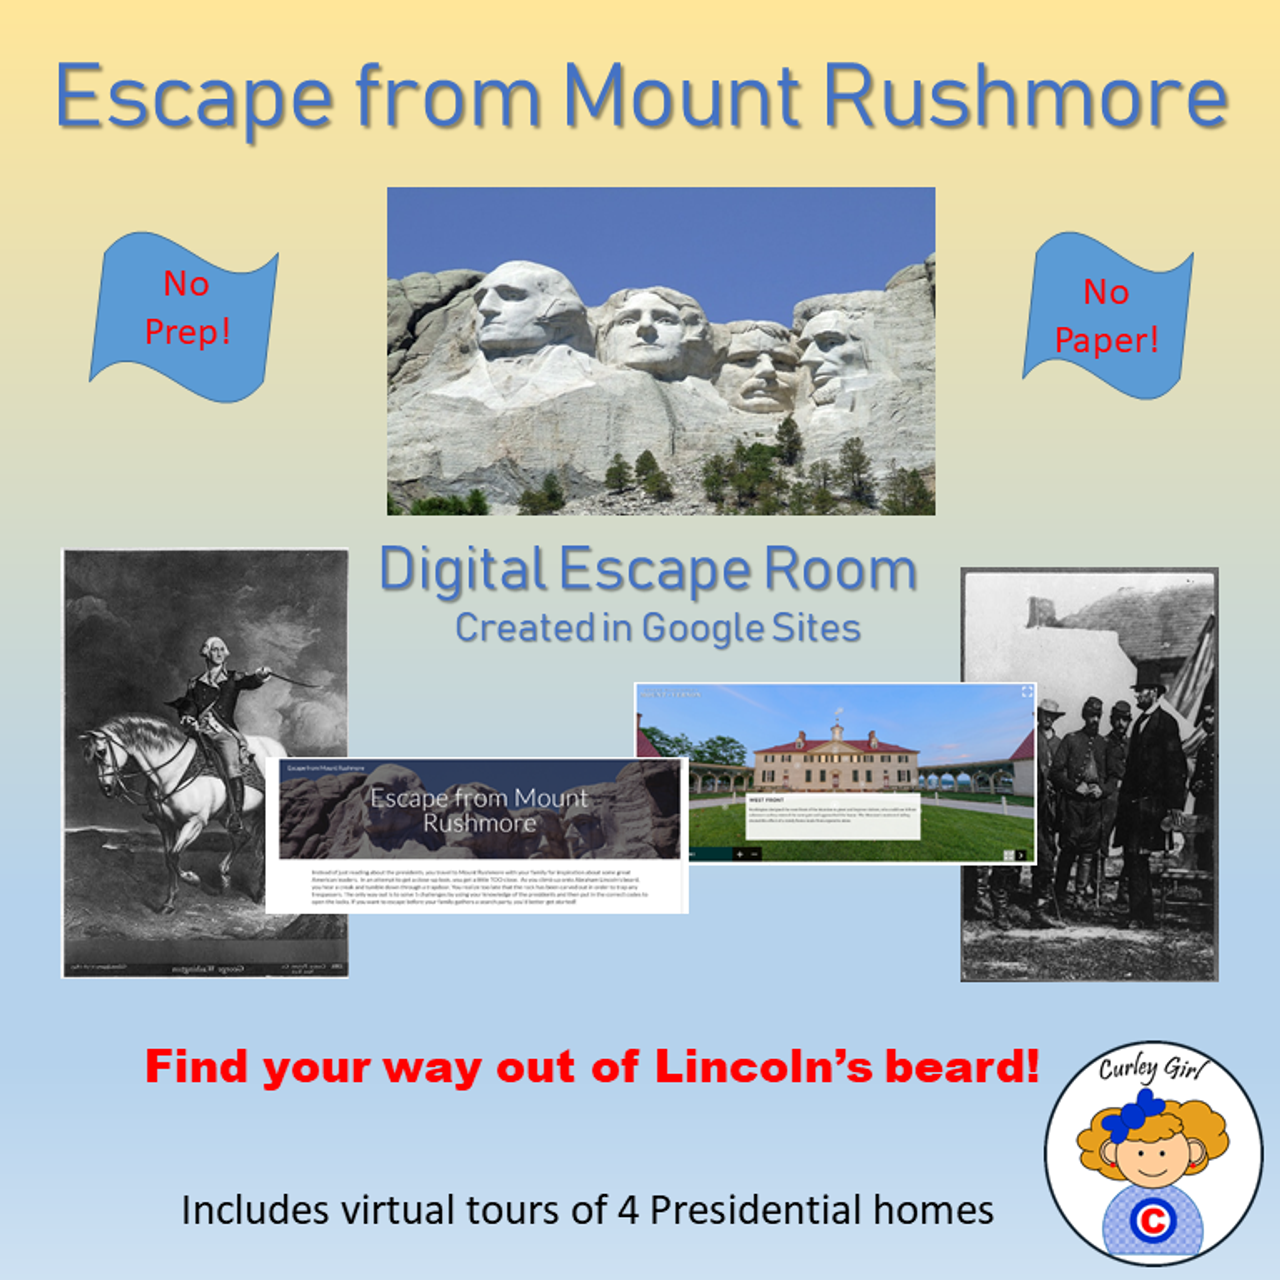 Escape from Mount Rushmore Presidents Day Digital Escape Room